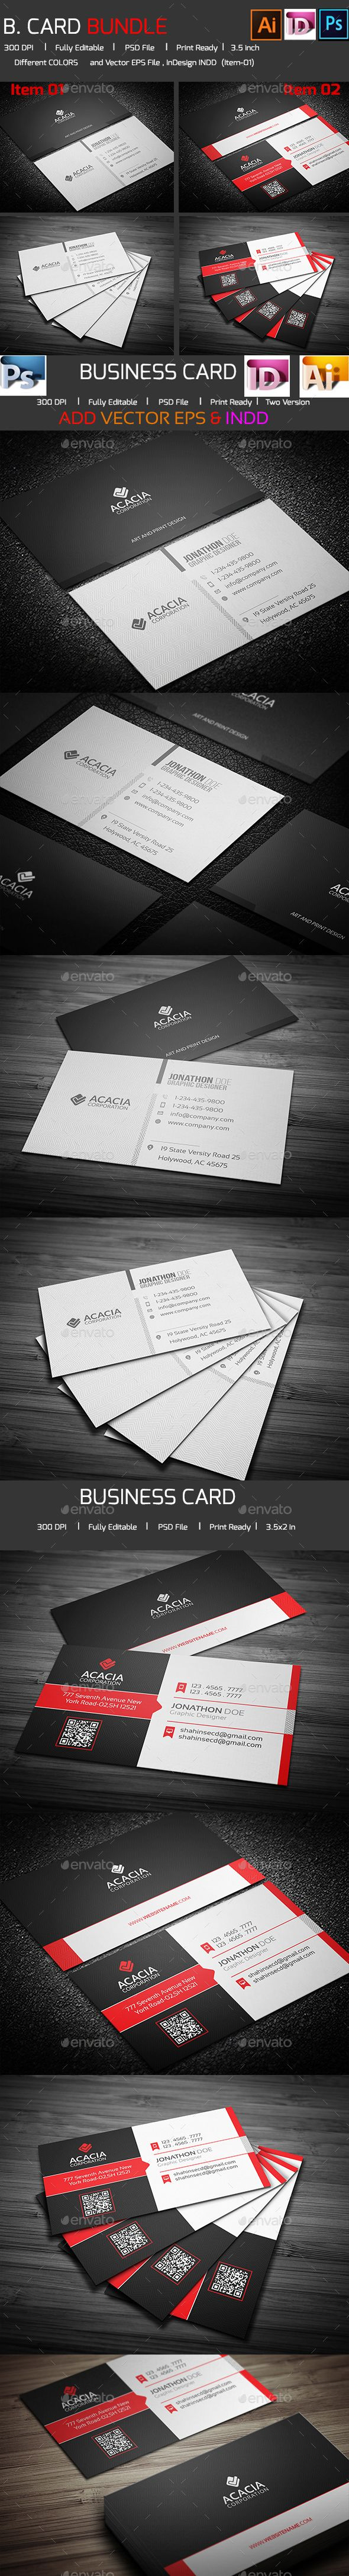 Bundle- 2 in 1 Business Card_04